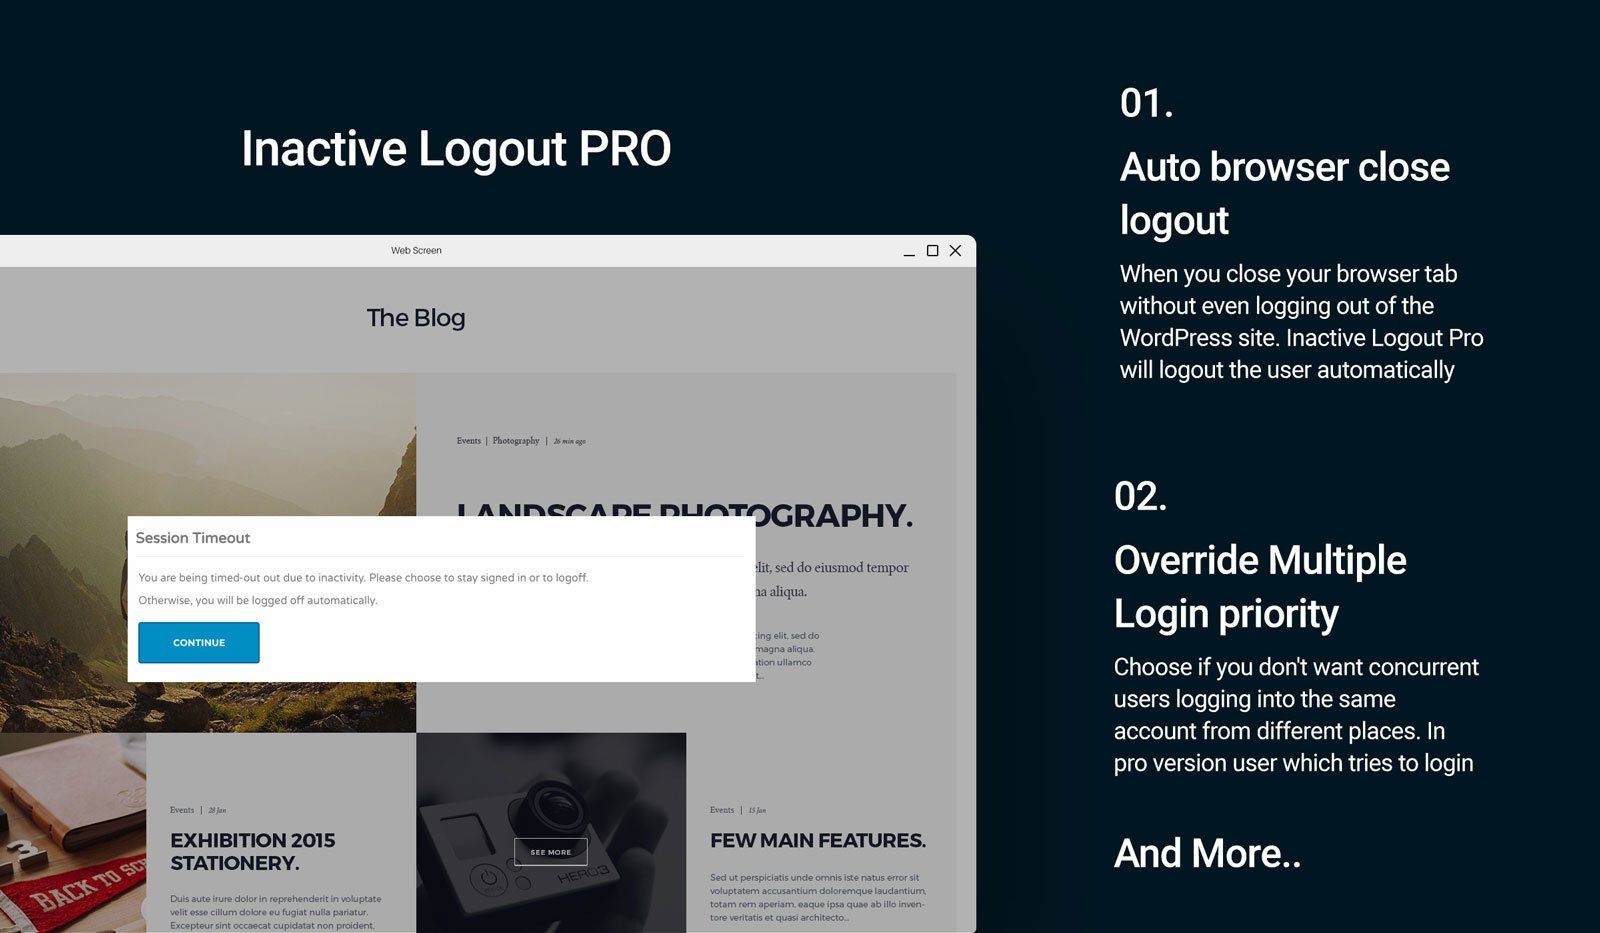 Inactive Logout Pro